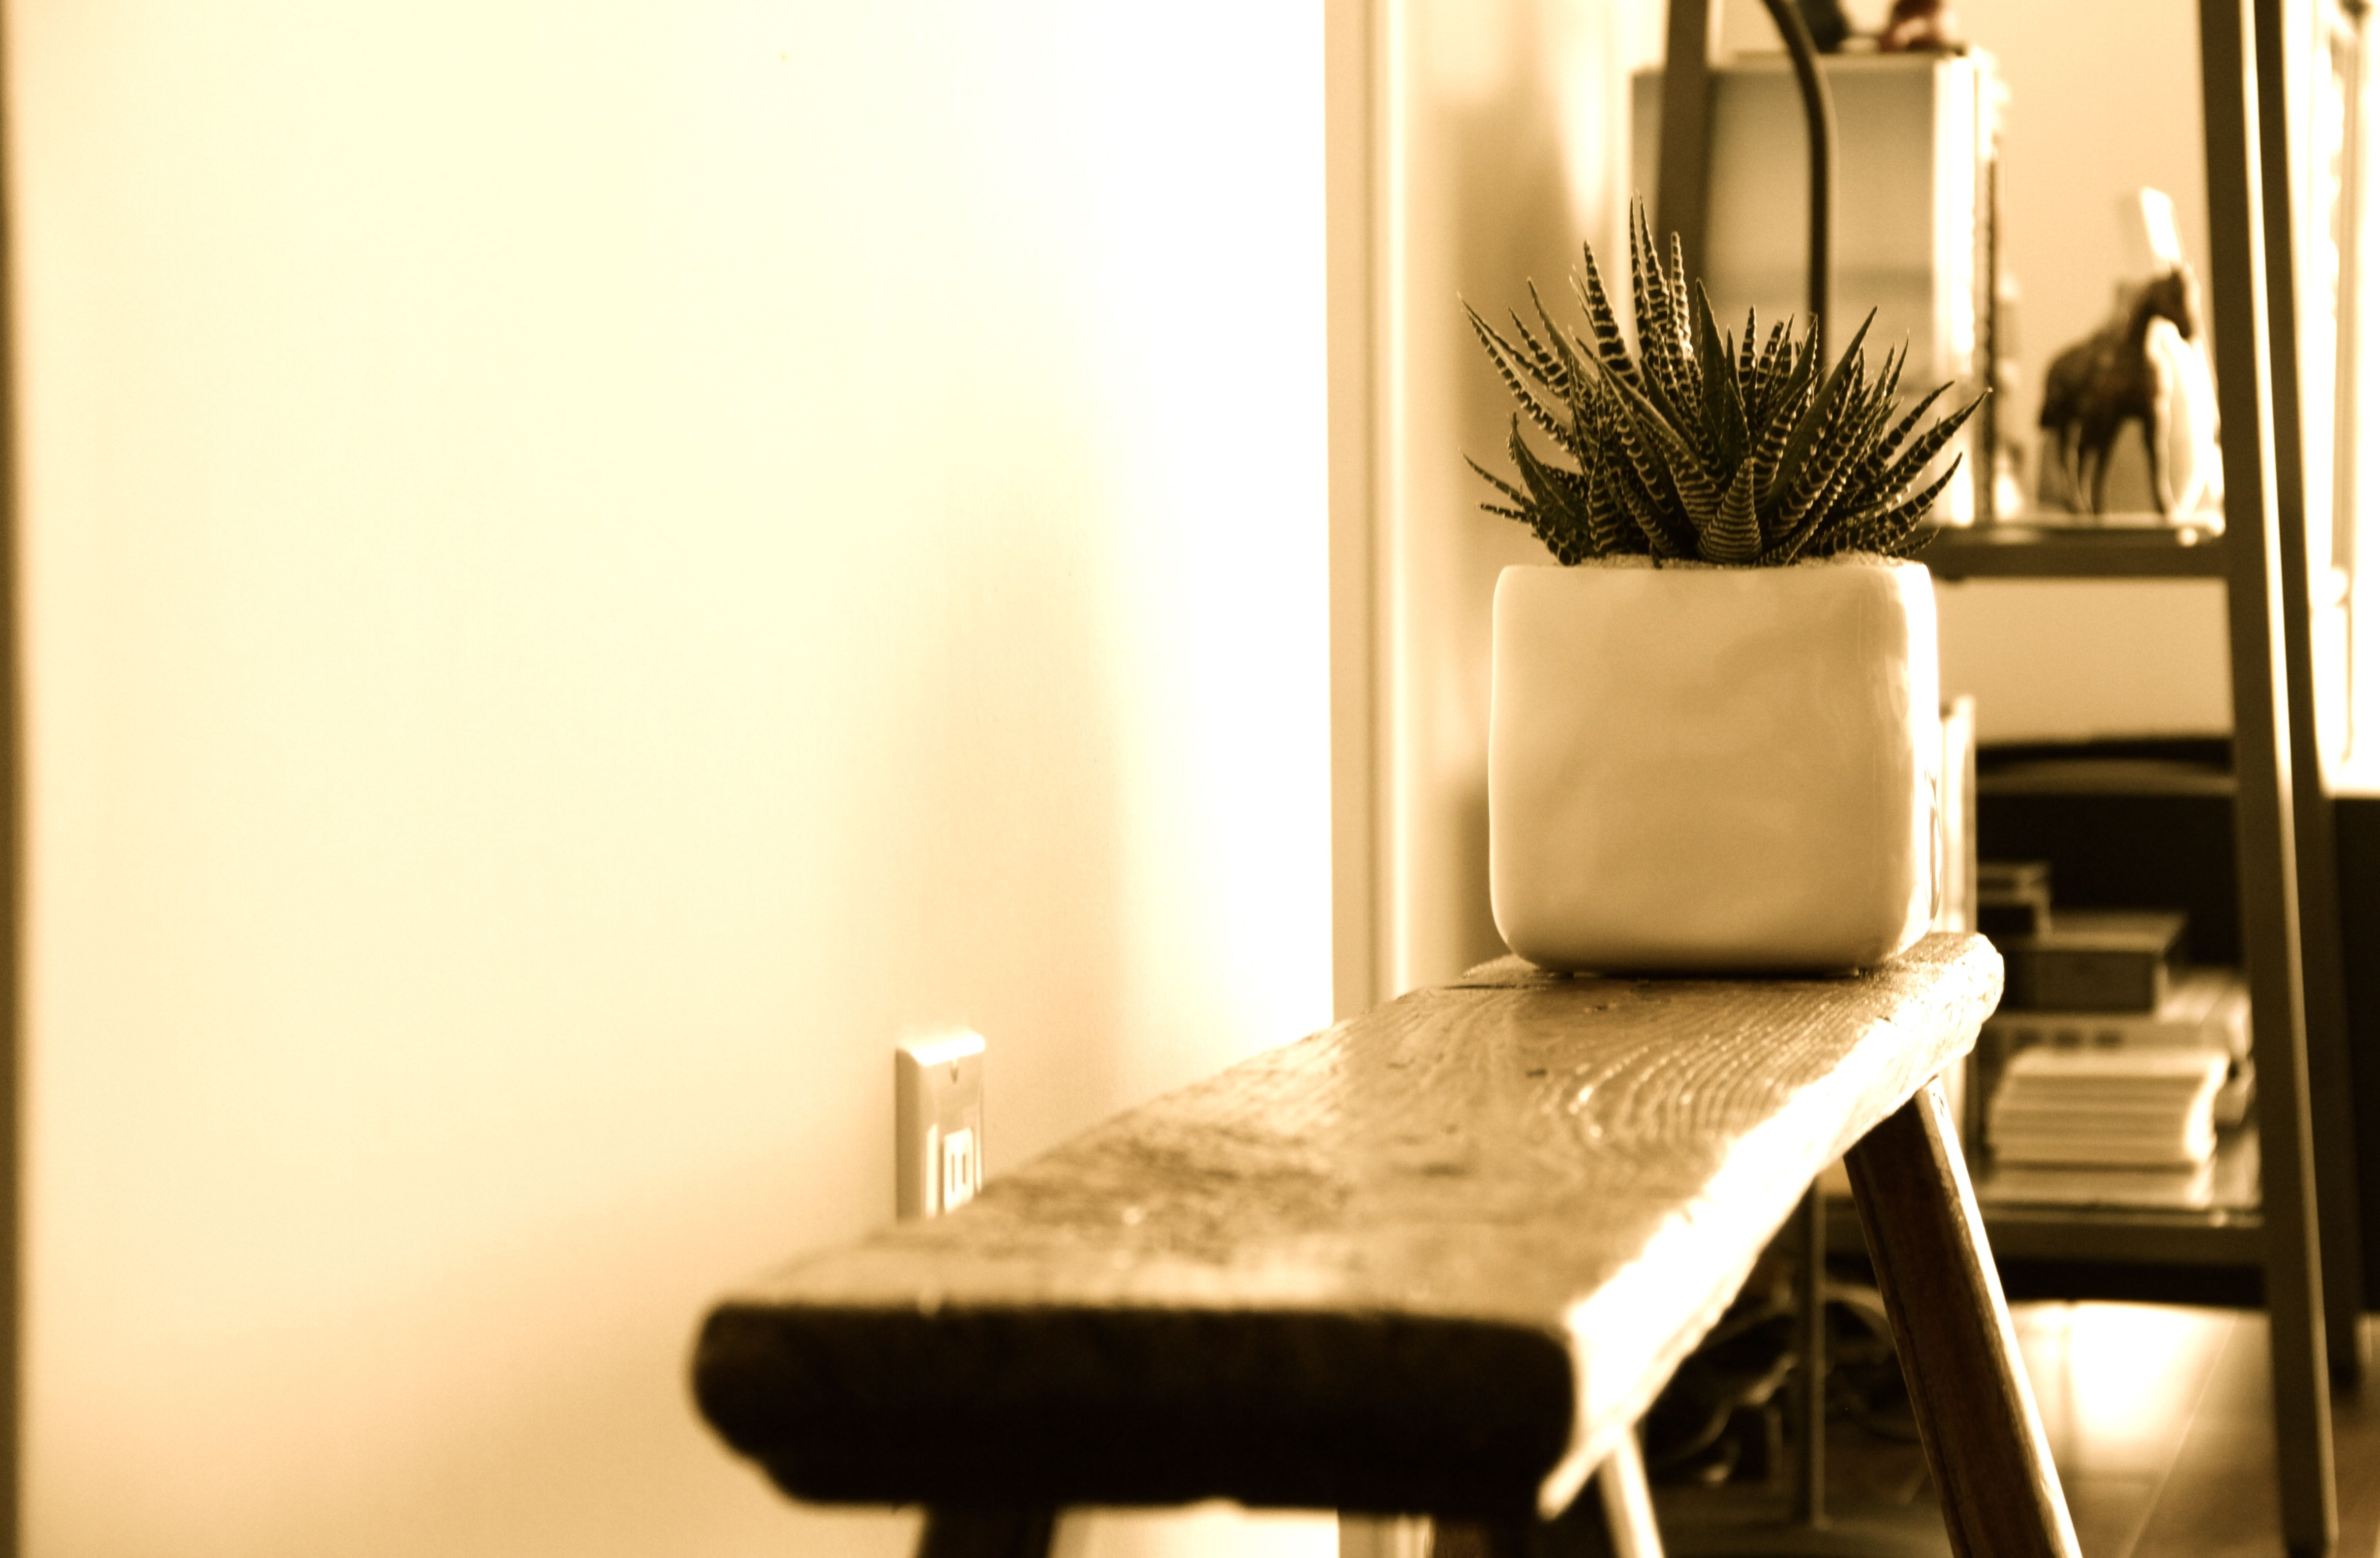 Bench and succulent!